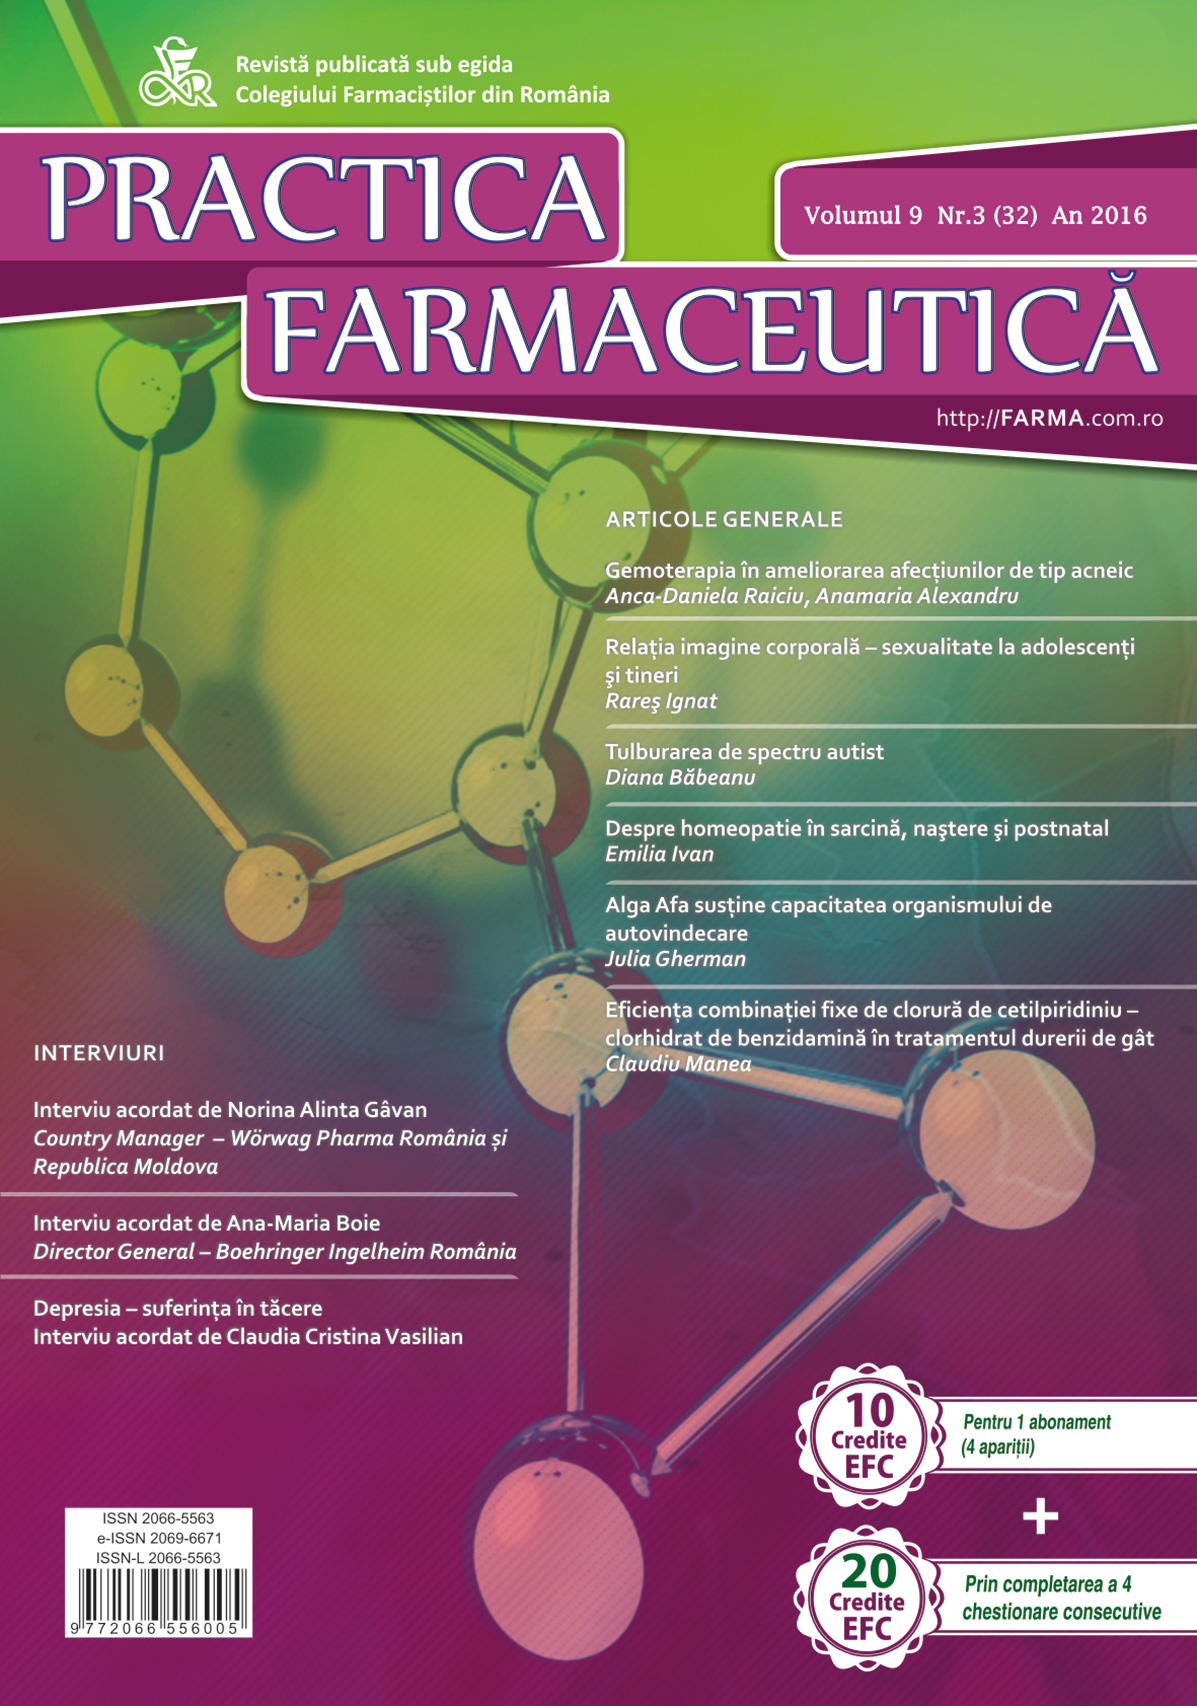 Revista Practica Farmaceutica, Vol. IX, No. 3 (32), 2016